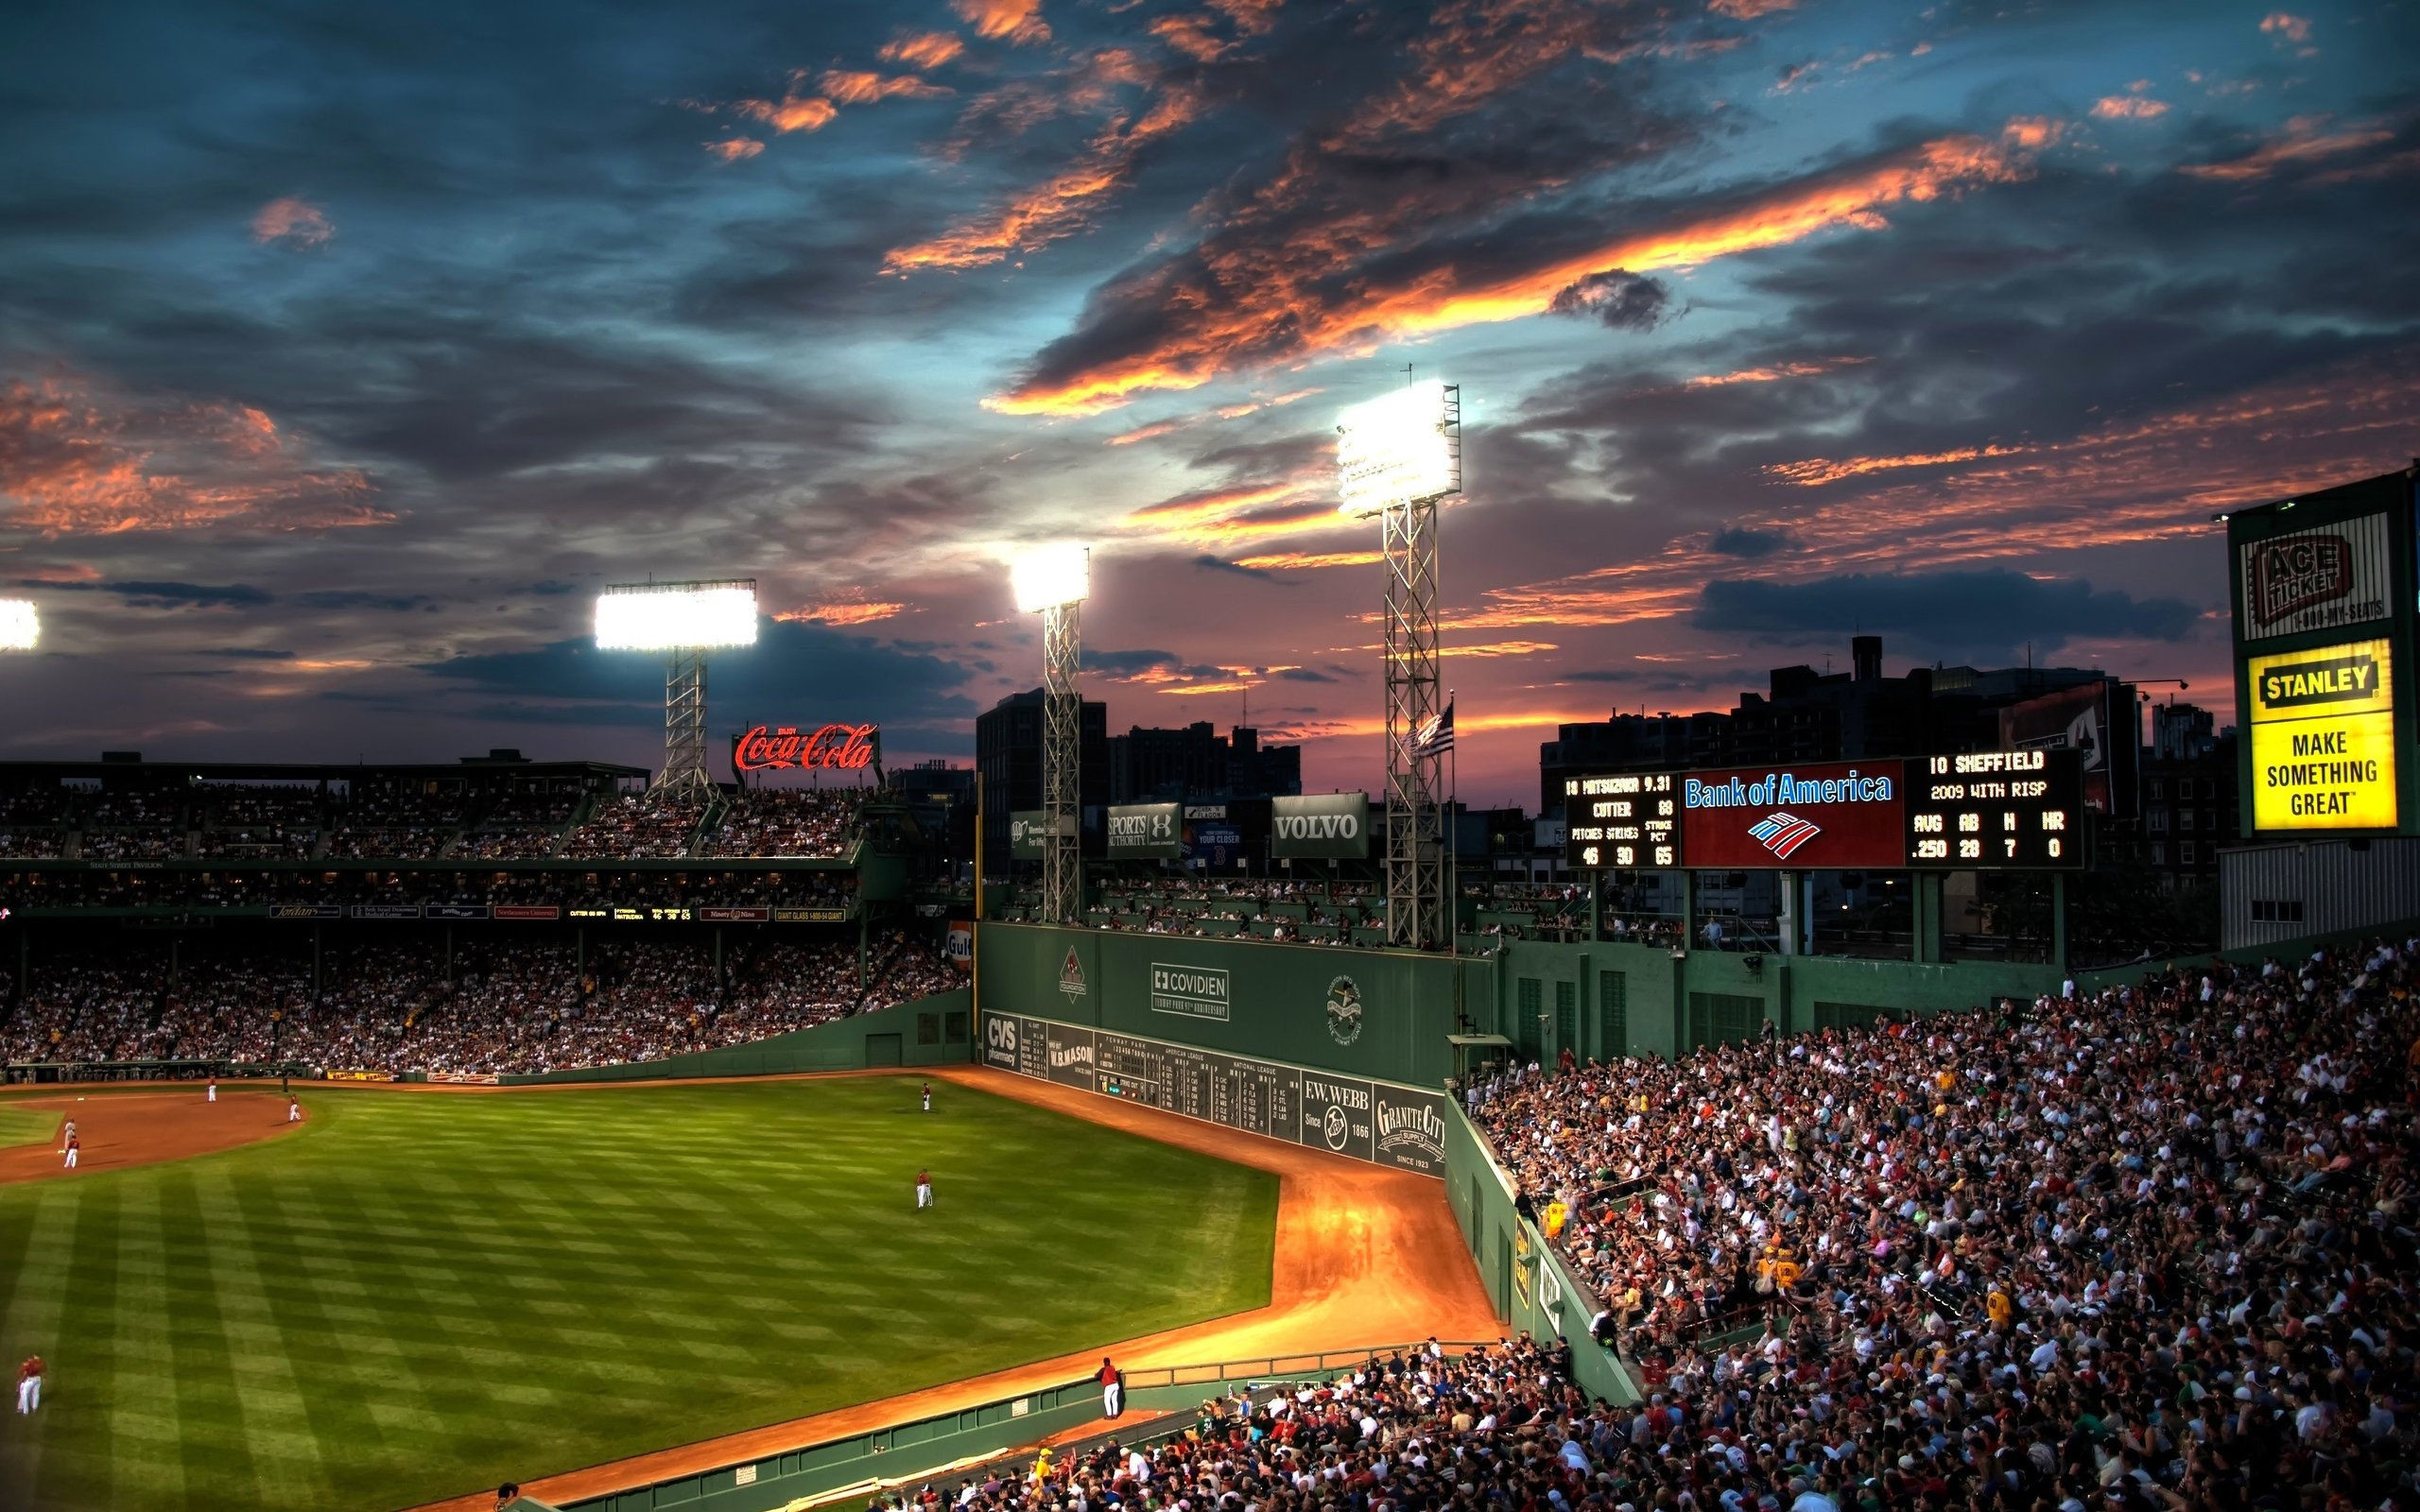 2560x1600 - Boston Red Sox Wallpaper Screensavers 8